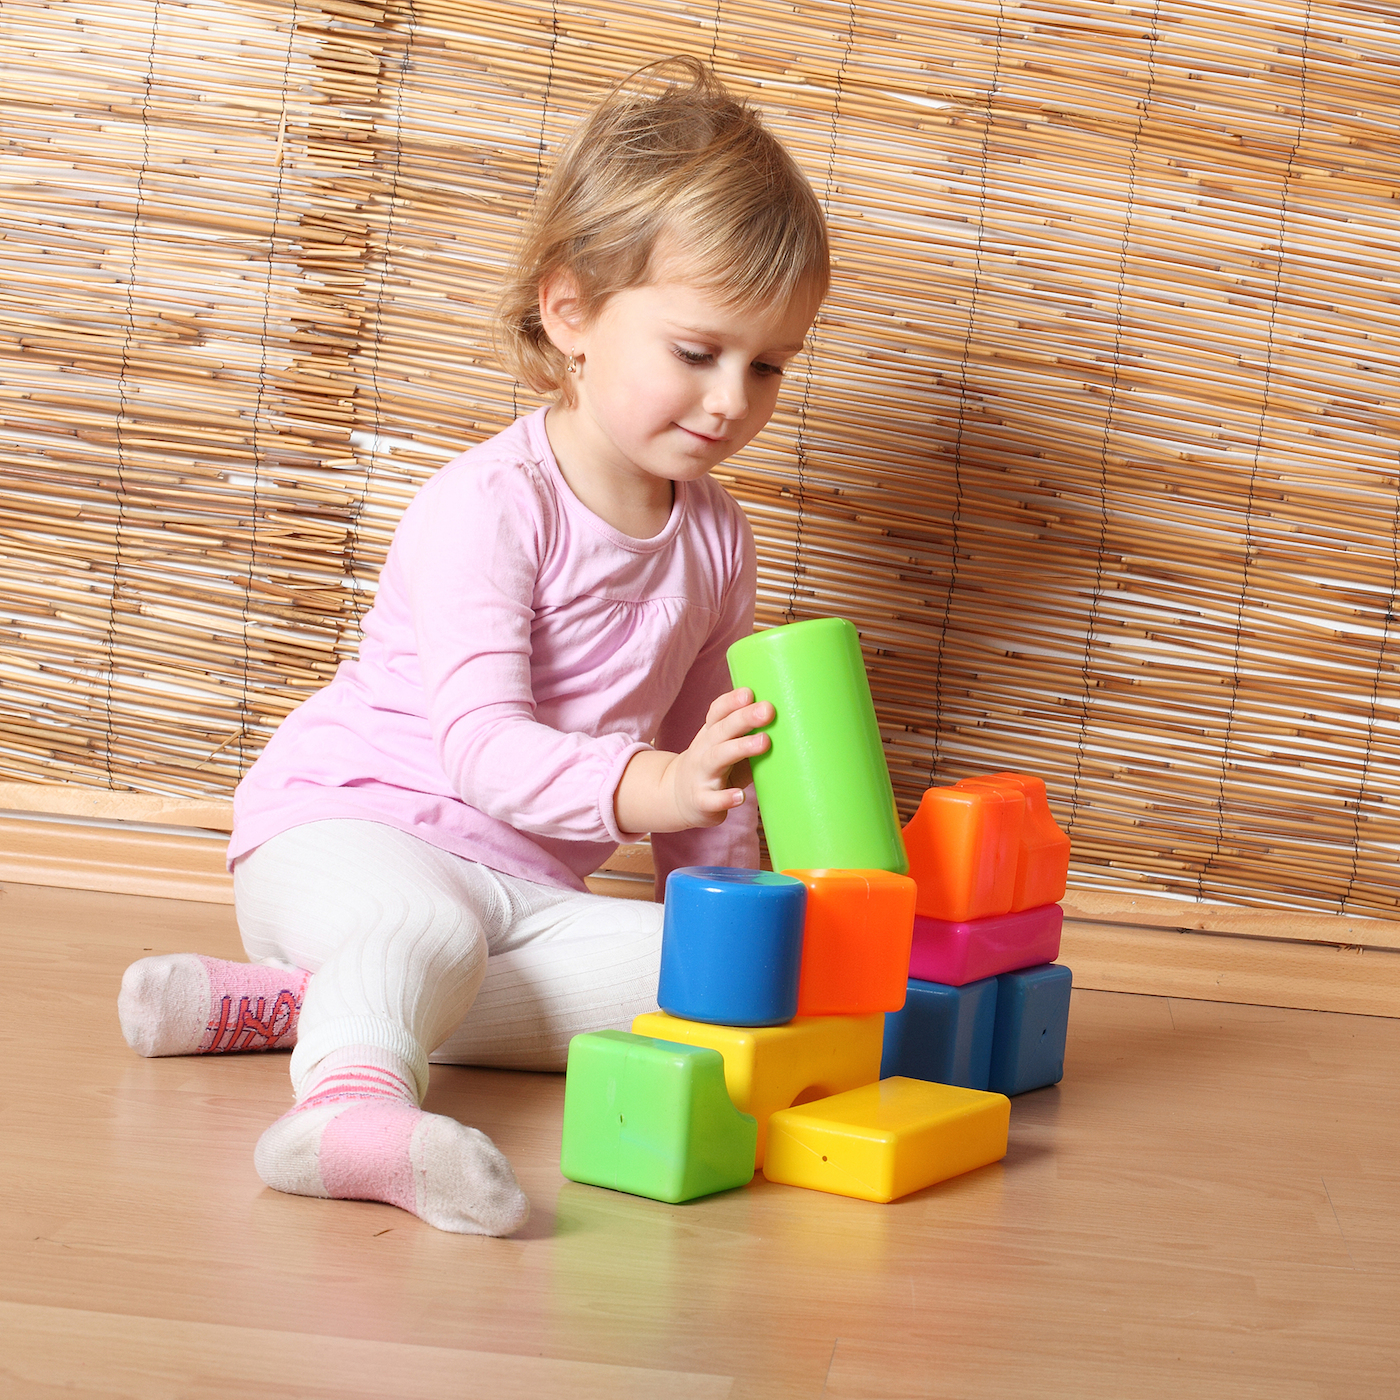 Toddler plays with blocks